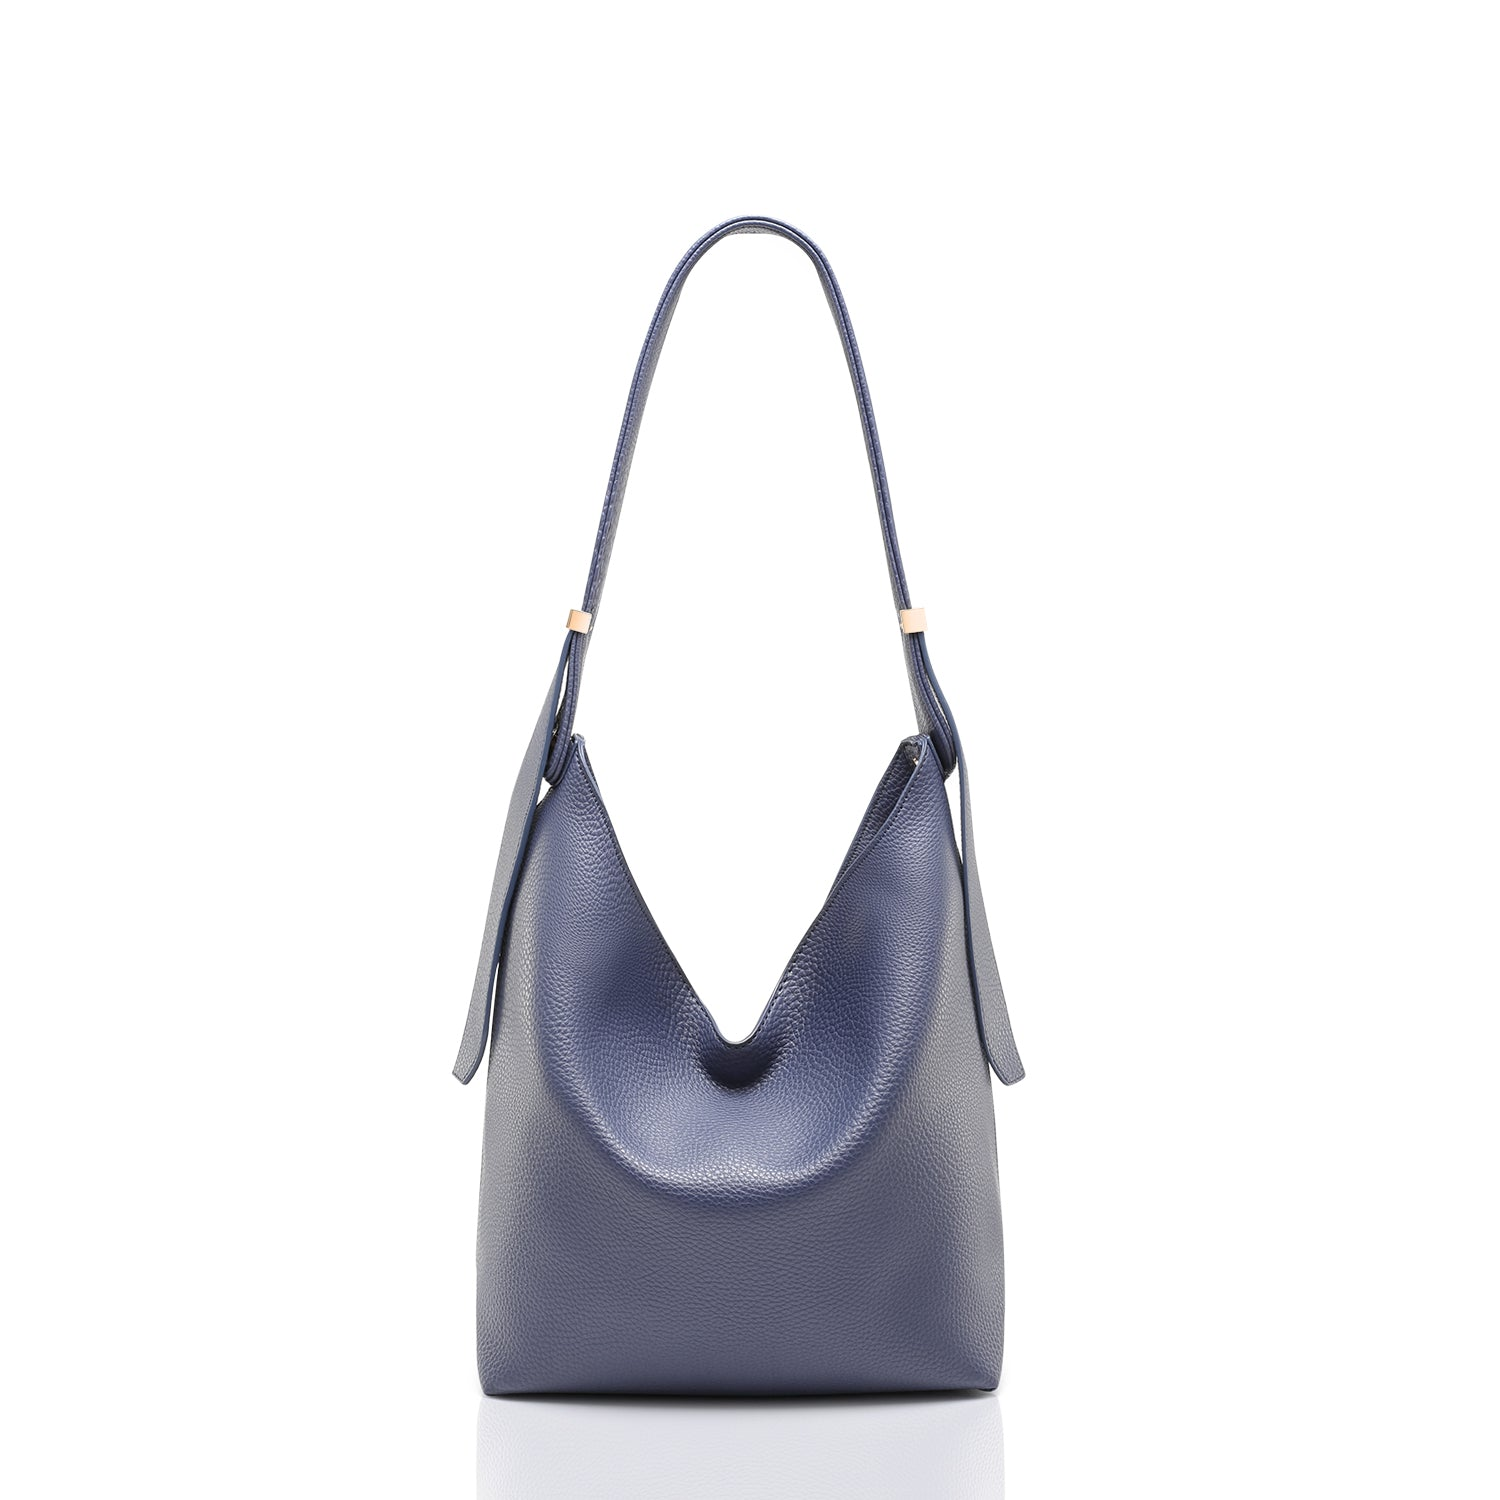 RIBAG HOBO MINI - STORM BLUE